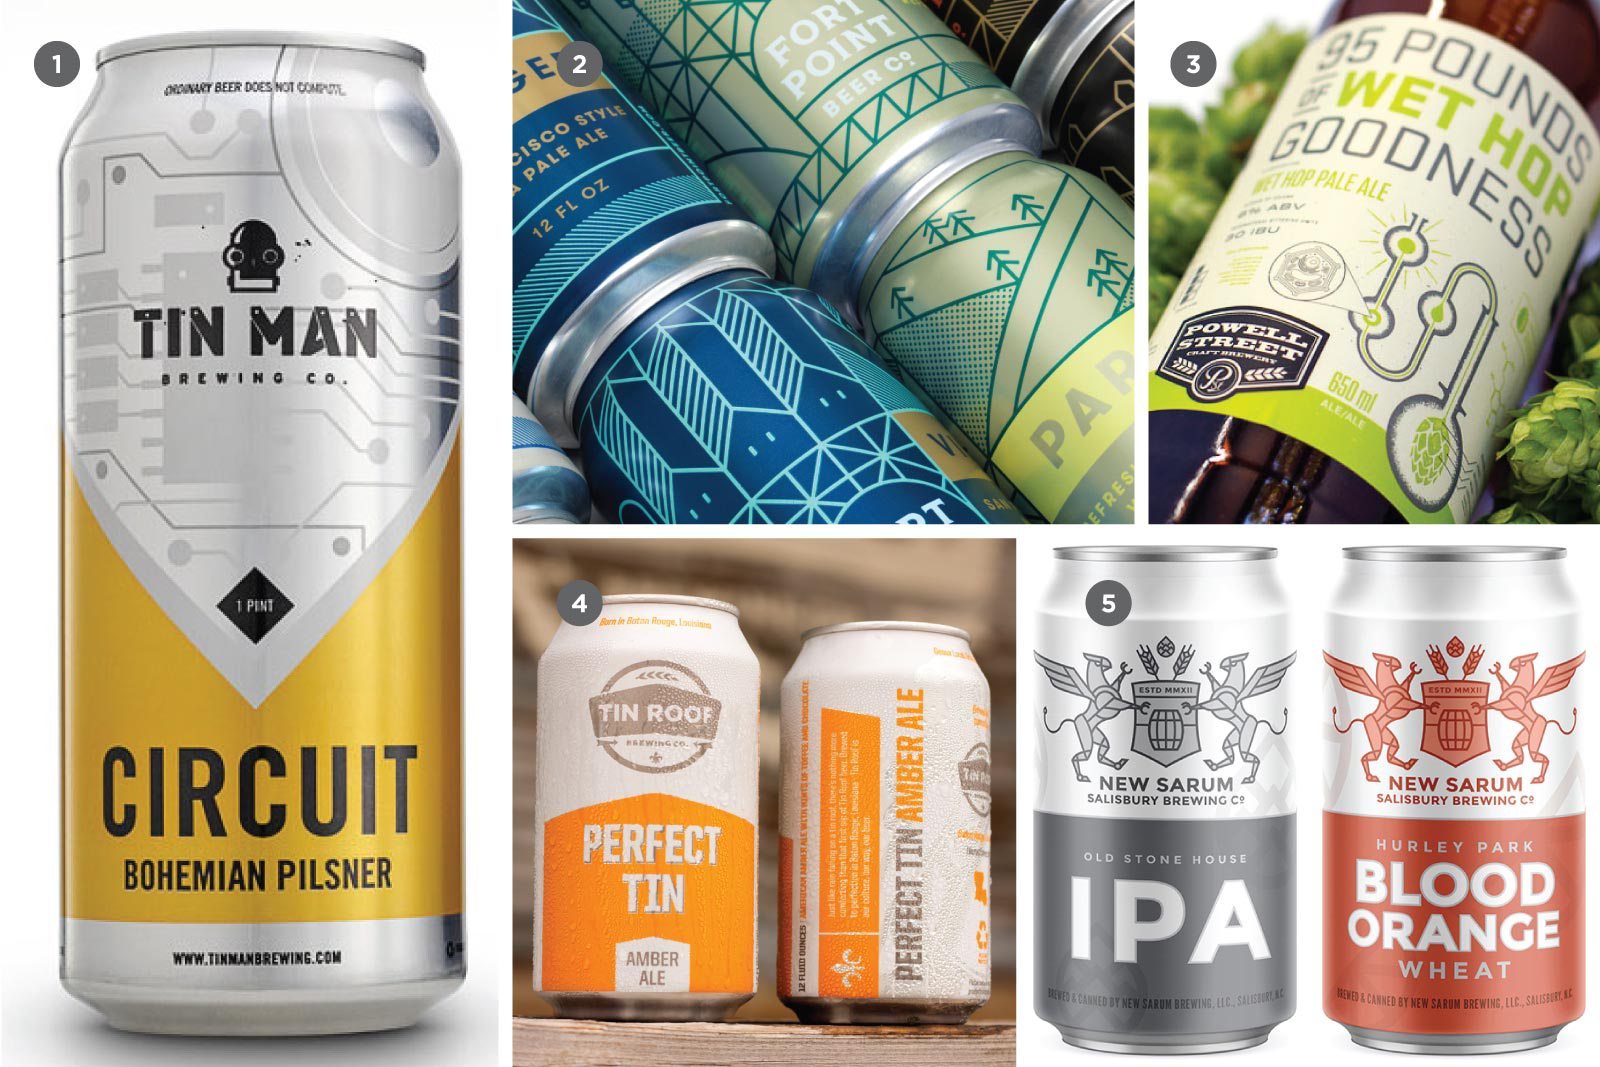 1. Tin Man Brewing Co. (Matt Wagner Design & Melodic Virtue), 2. Fort Point Beer Co. (Manual), 3. Powell Street Craft Brewery (Ben Didier), 4. Tin Roof Brewing Co. (Unreal), 5. New Sarum Brewing Co. (Big Bridge)